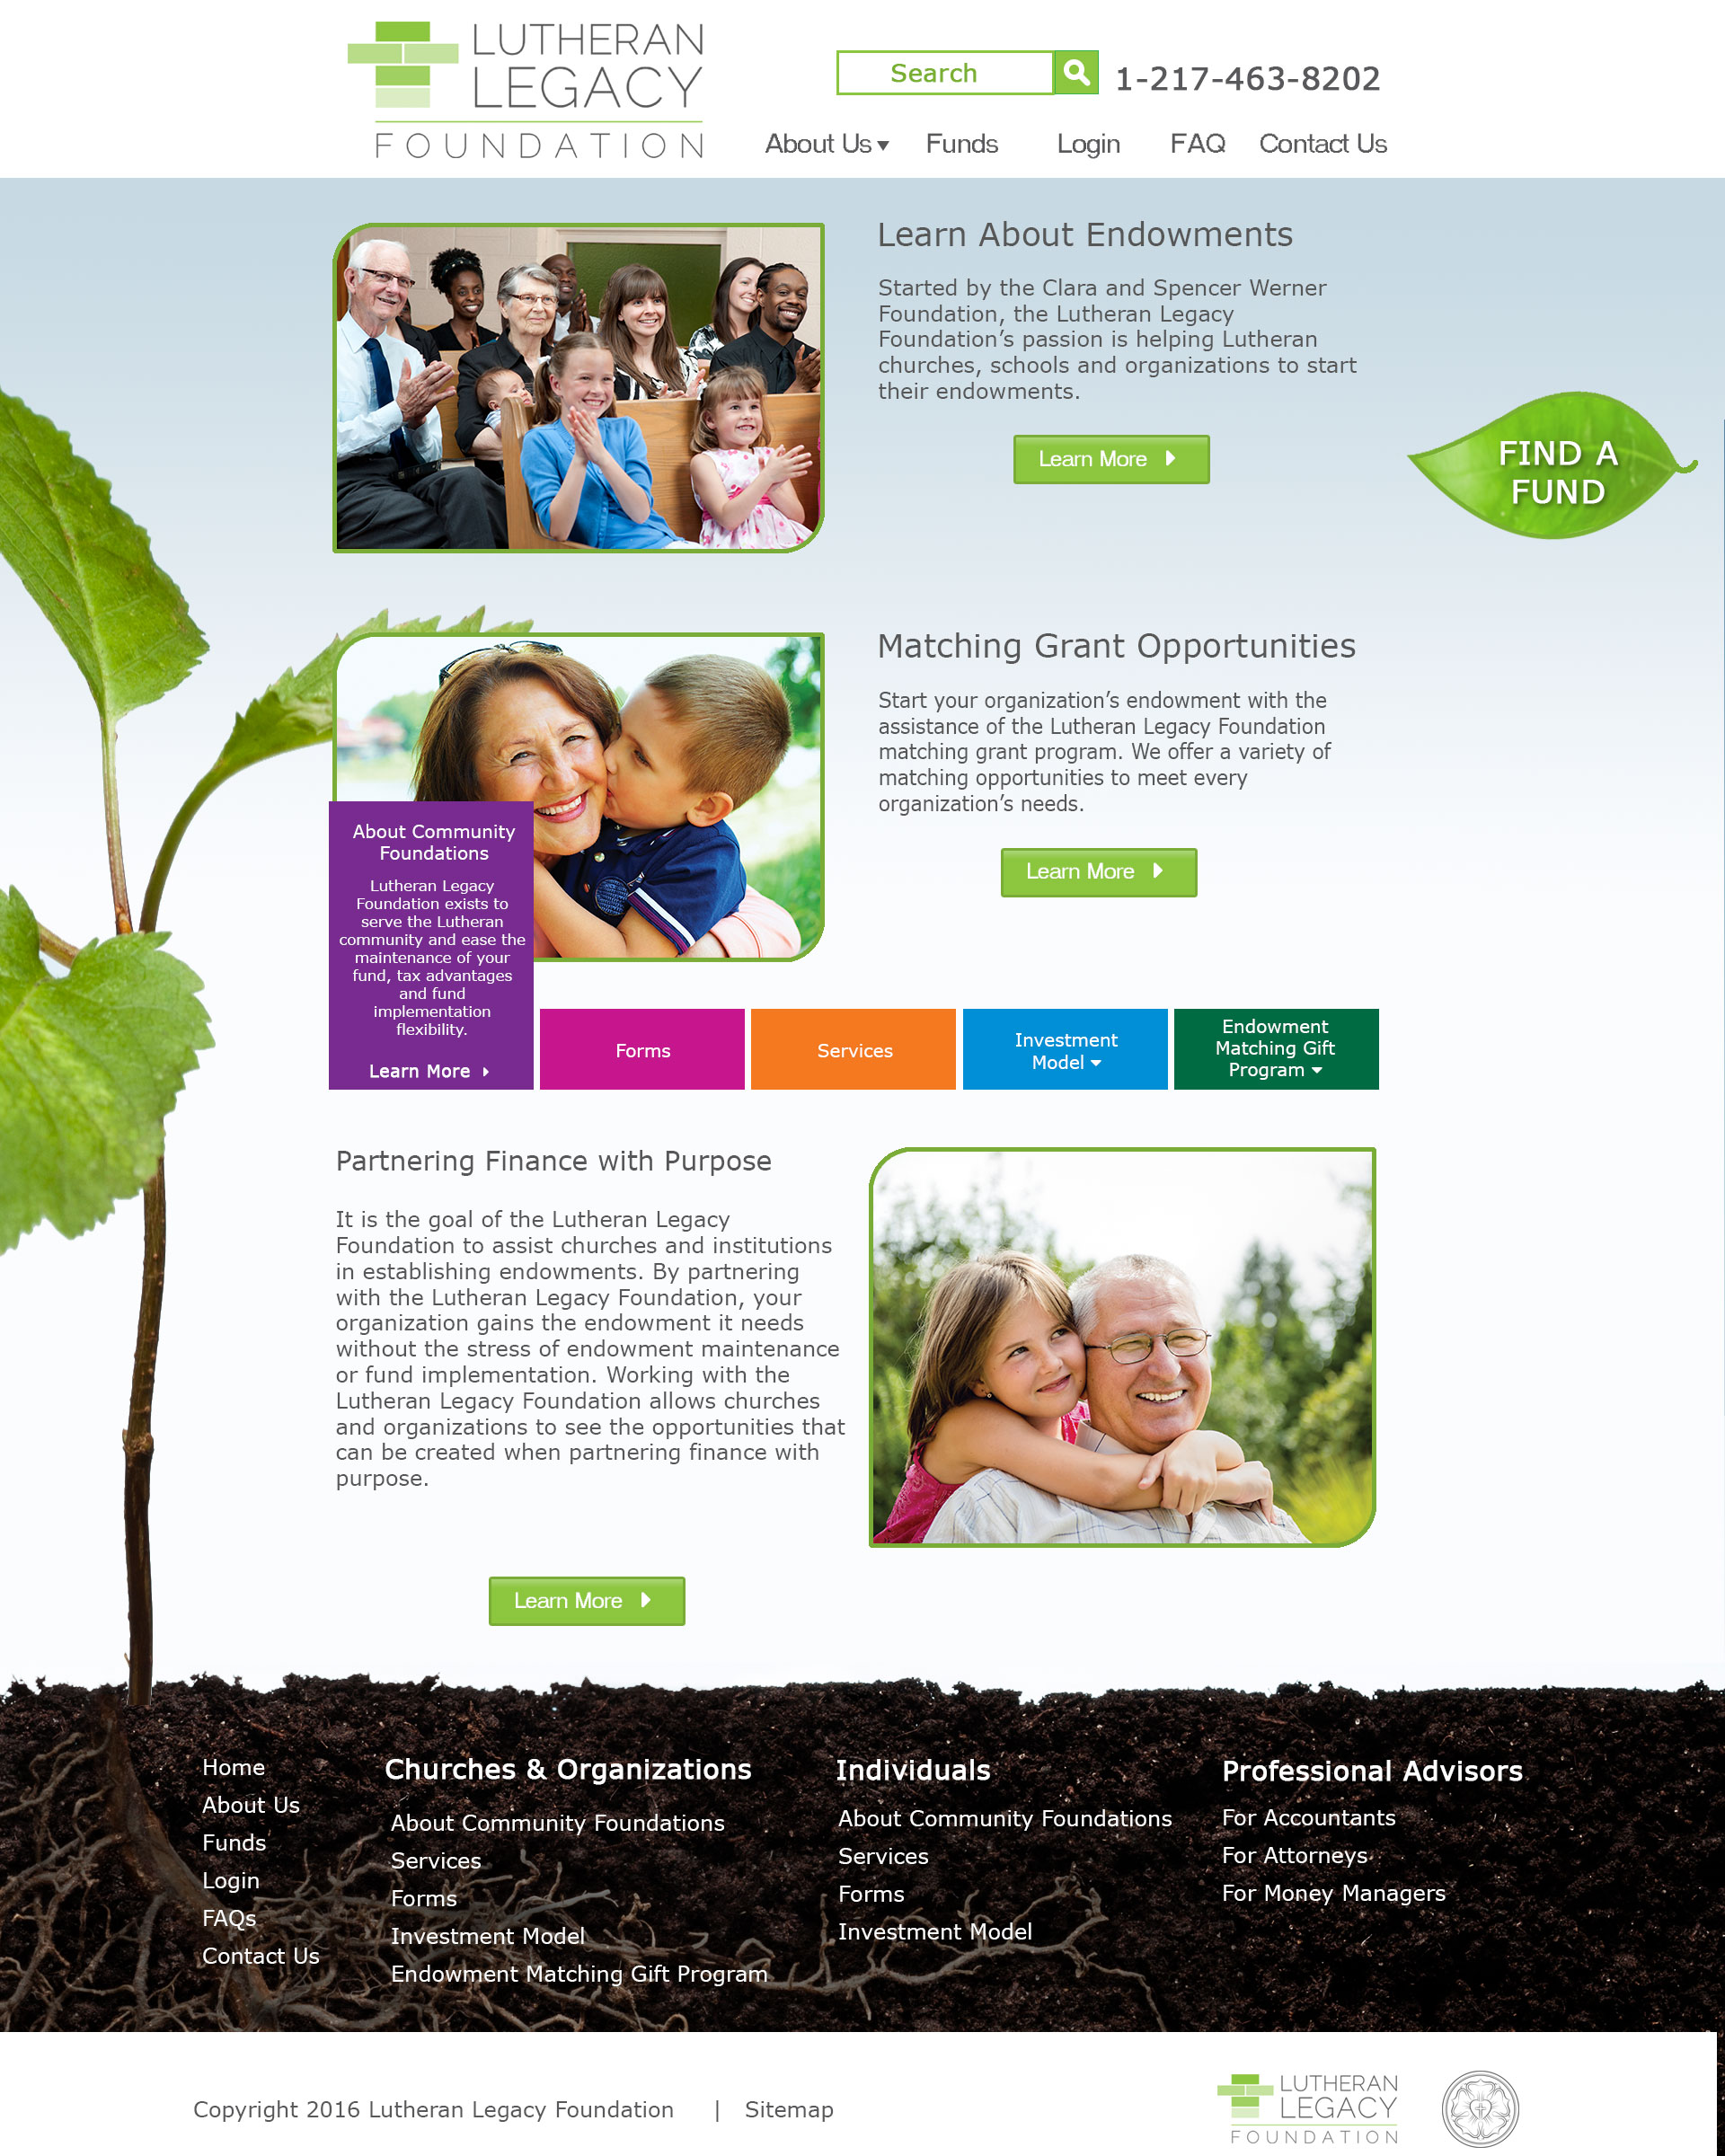 Lutheran Legacy Foundation Organizations - Hover